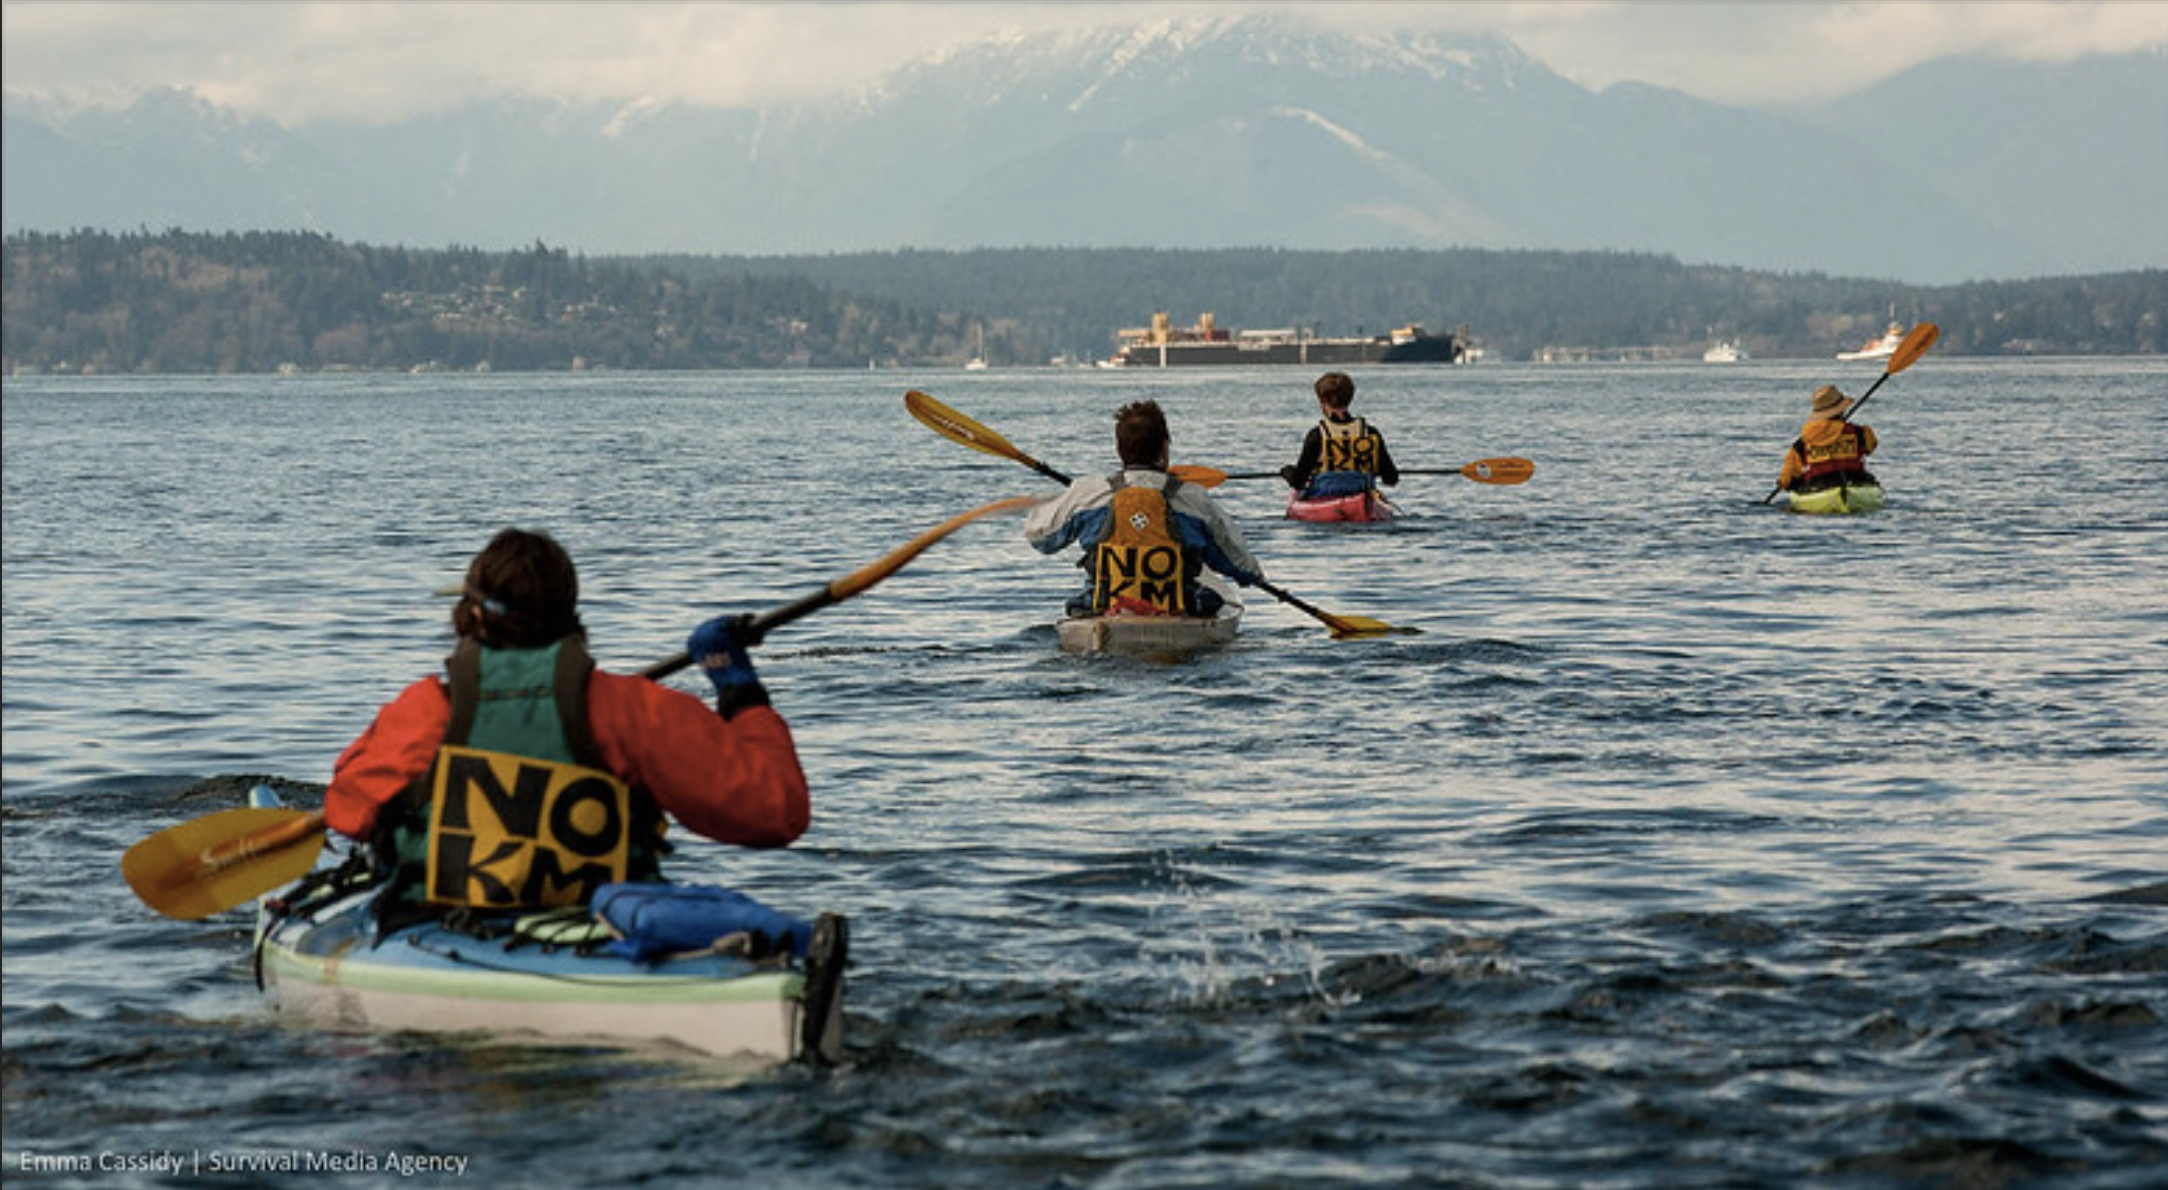 Image of four Indigenous water protectors in kayaks on the water in protest with their backs turned